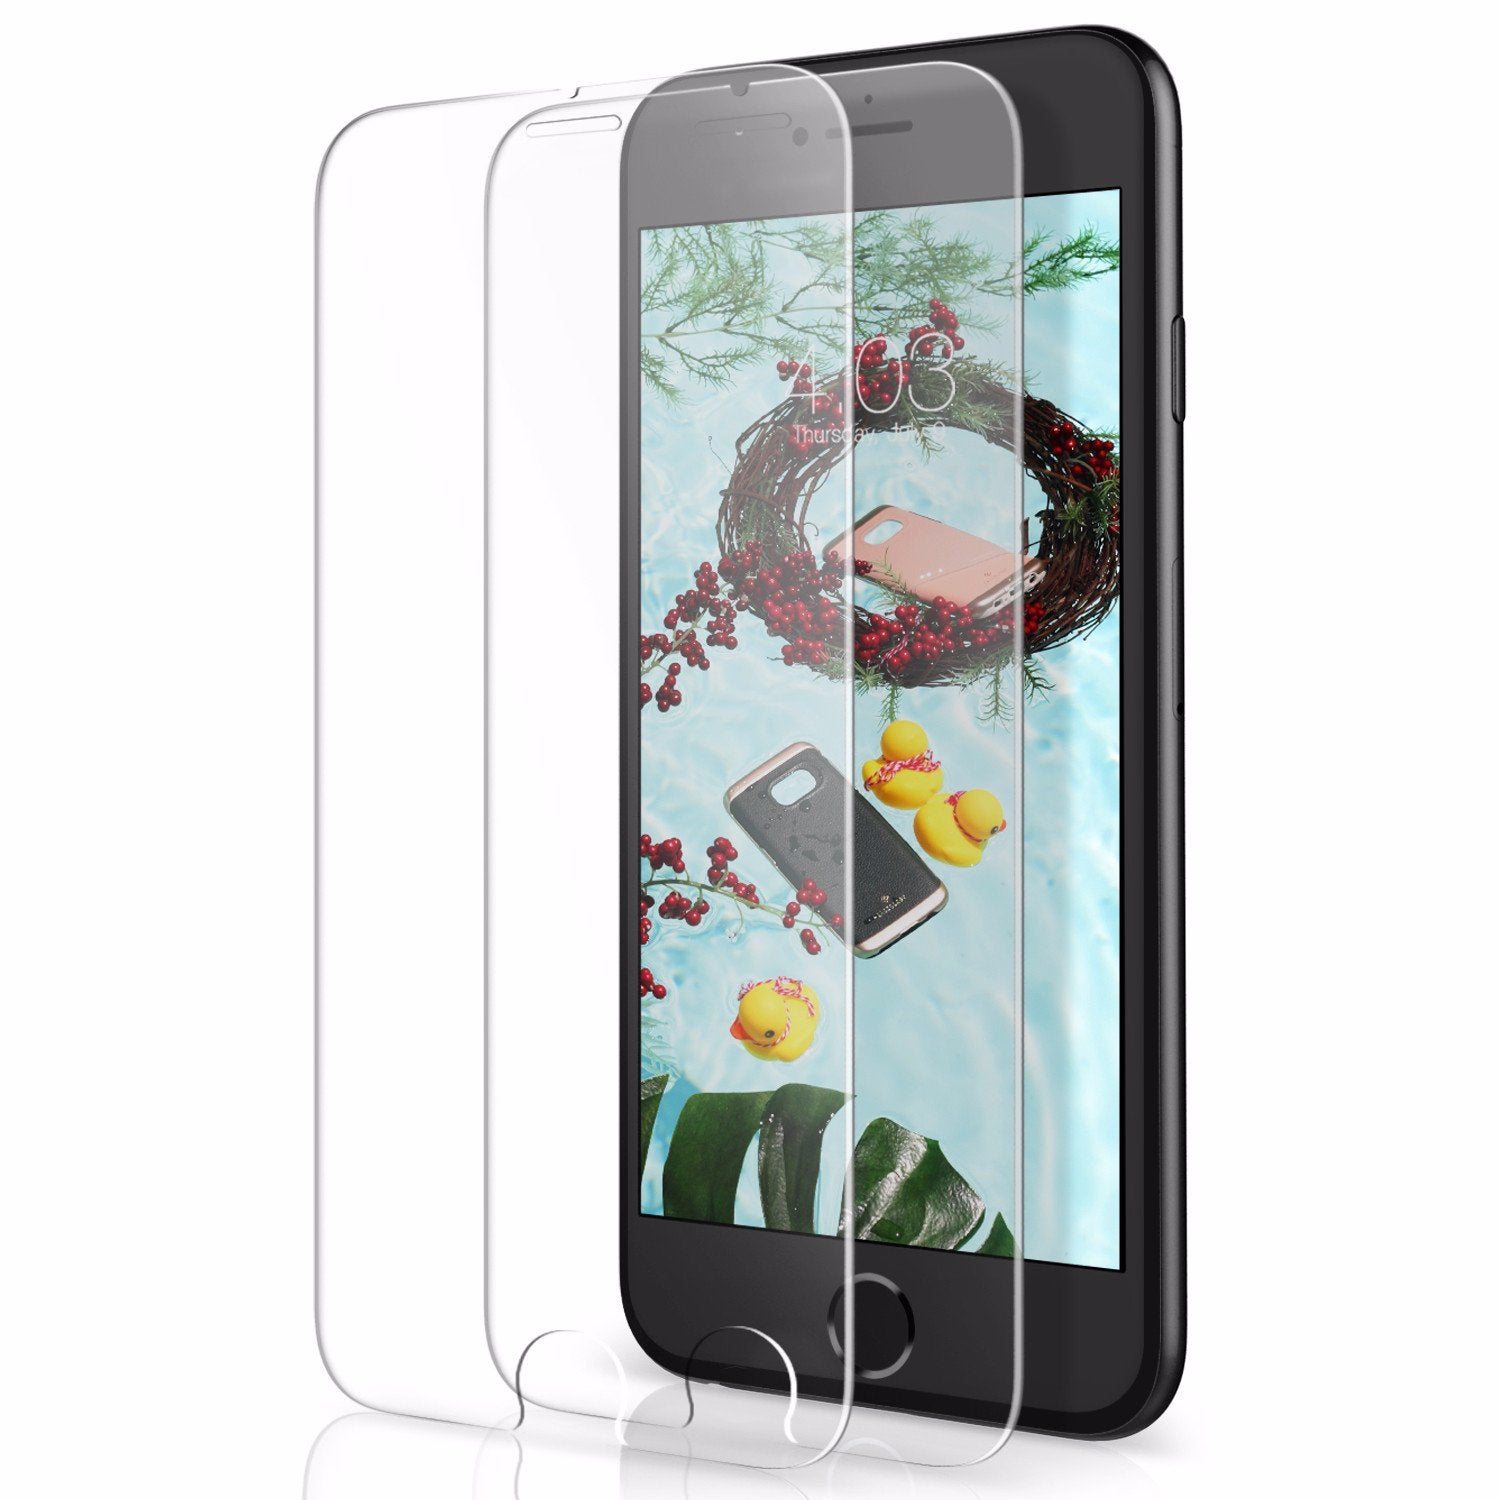 iPhone 8 Plus Tempered Glass Screen Protectors